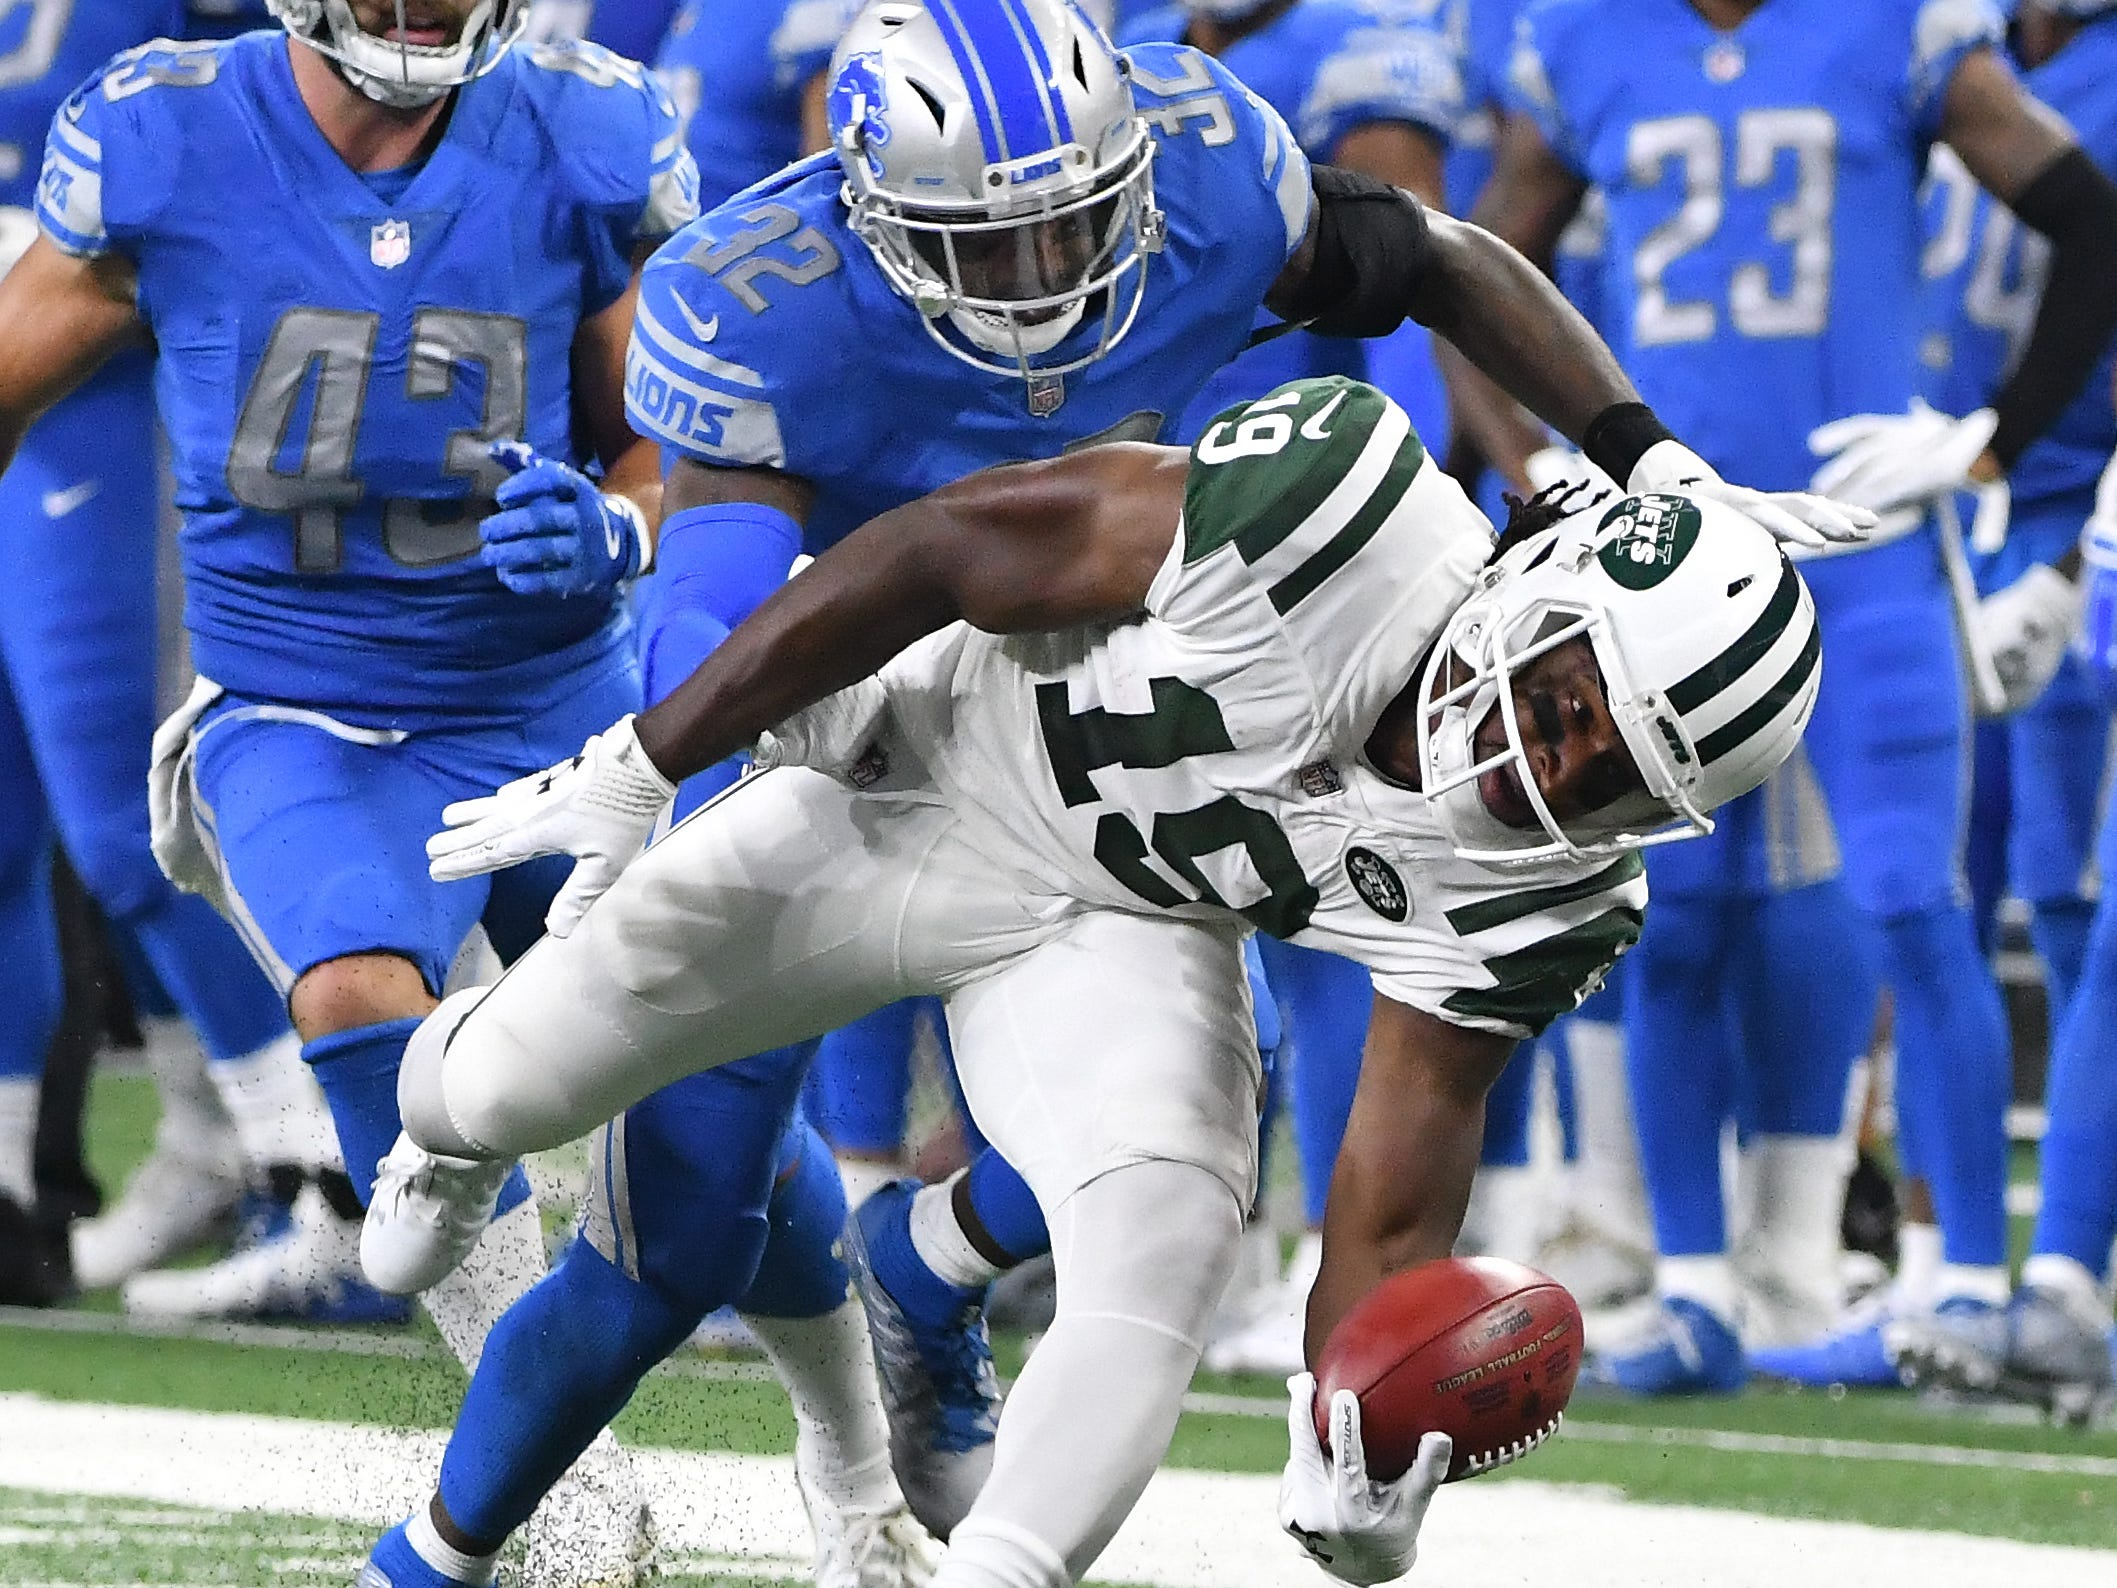 Jets' Andre Roberts is brought down by Lions' Tavon Wilson in the first quarter.